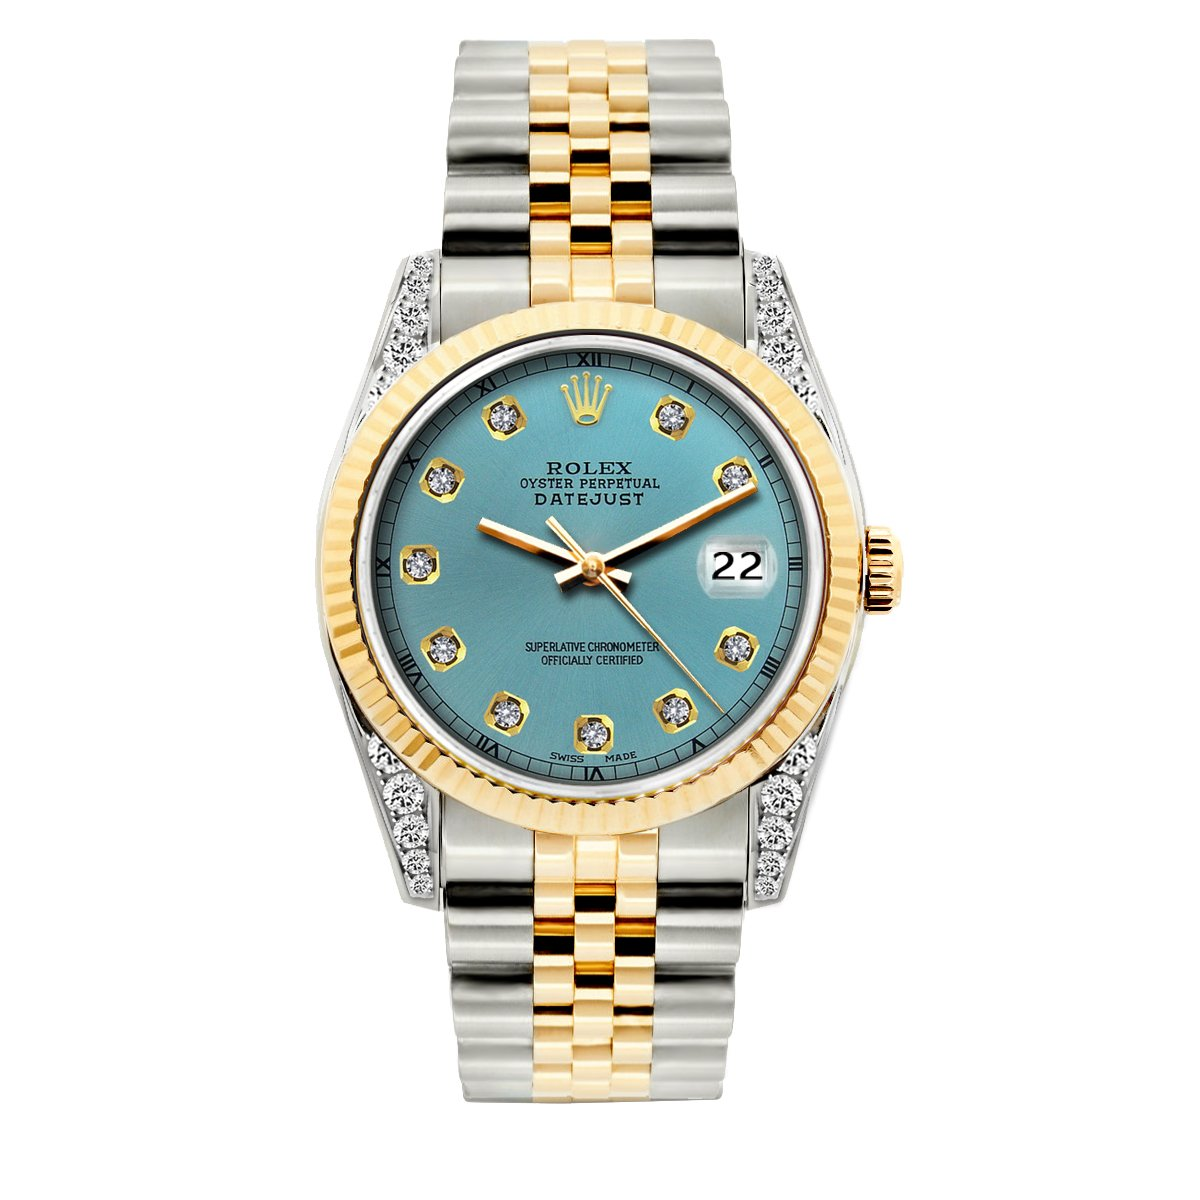 Rolex Datejust Diamond Watch, 36mm, Yellow Gold and Stainless Steel Bracelet Ice Blue Dial w/ Diamond Lugs